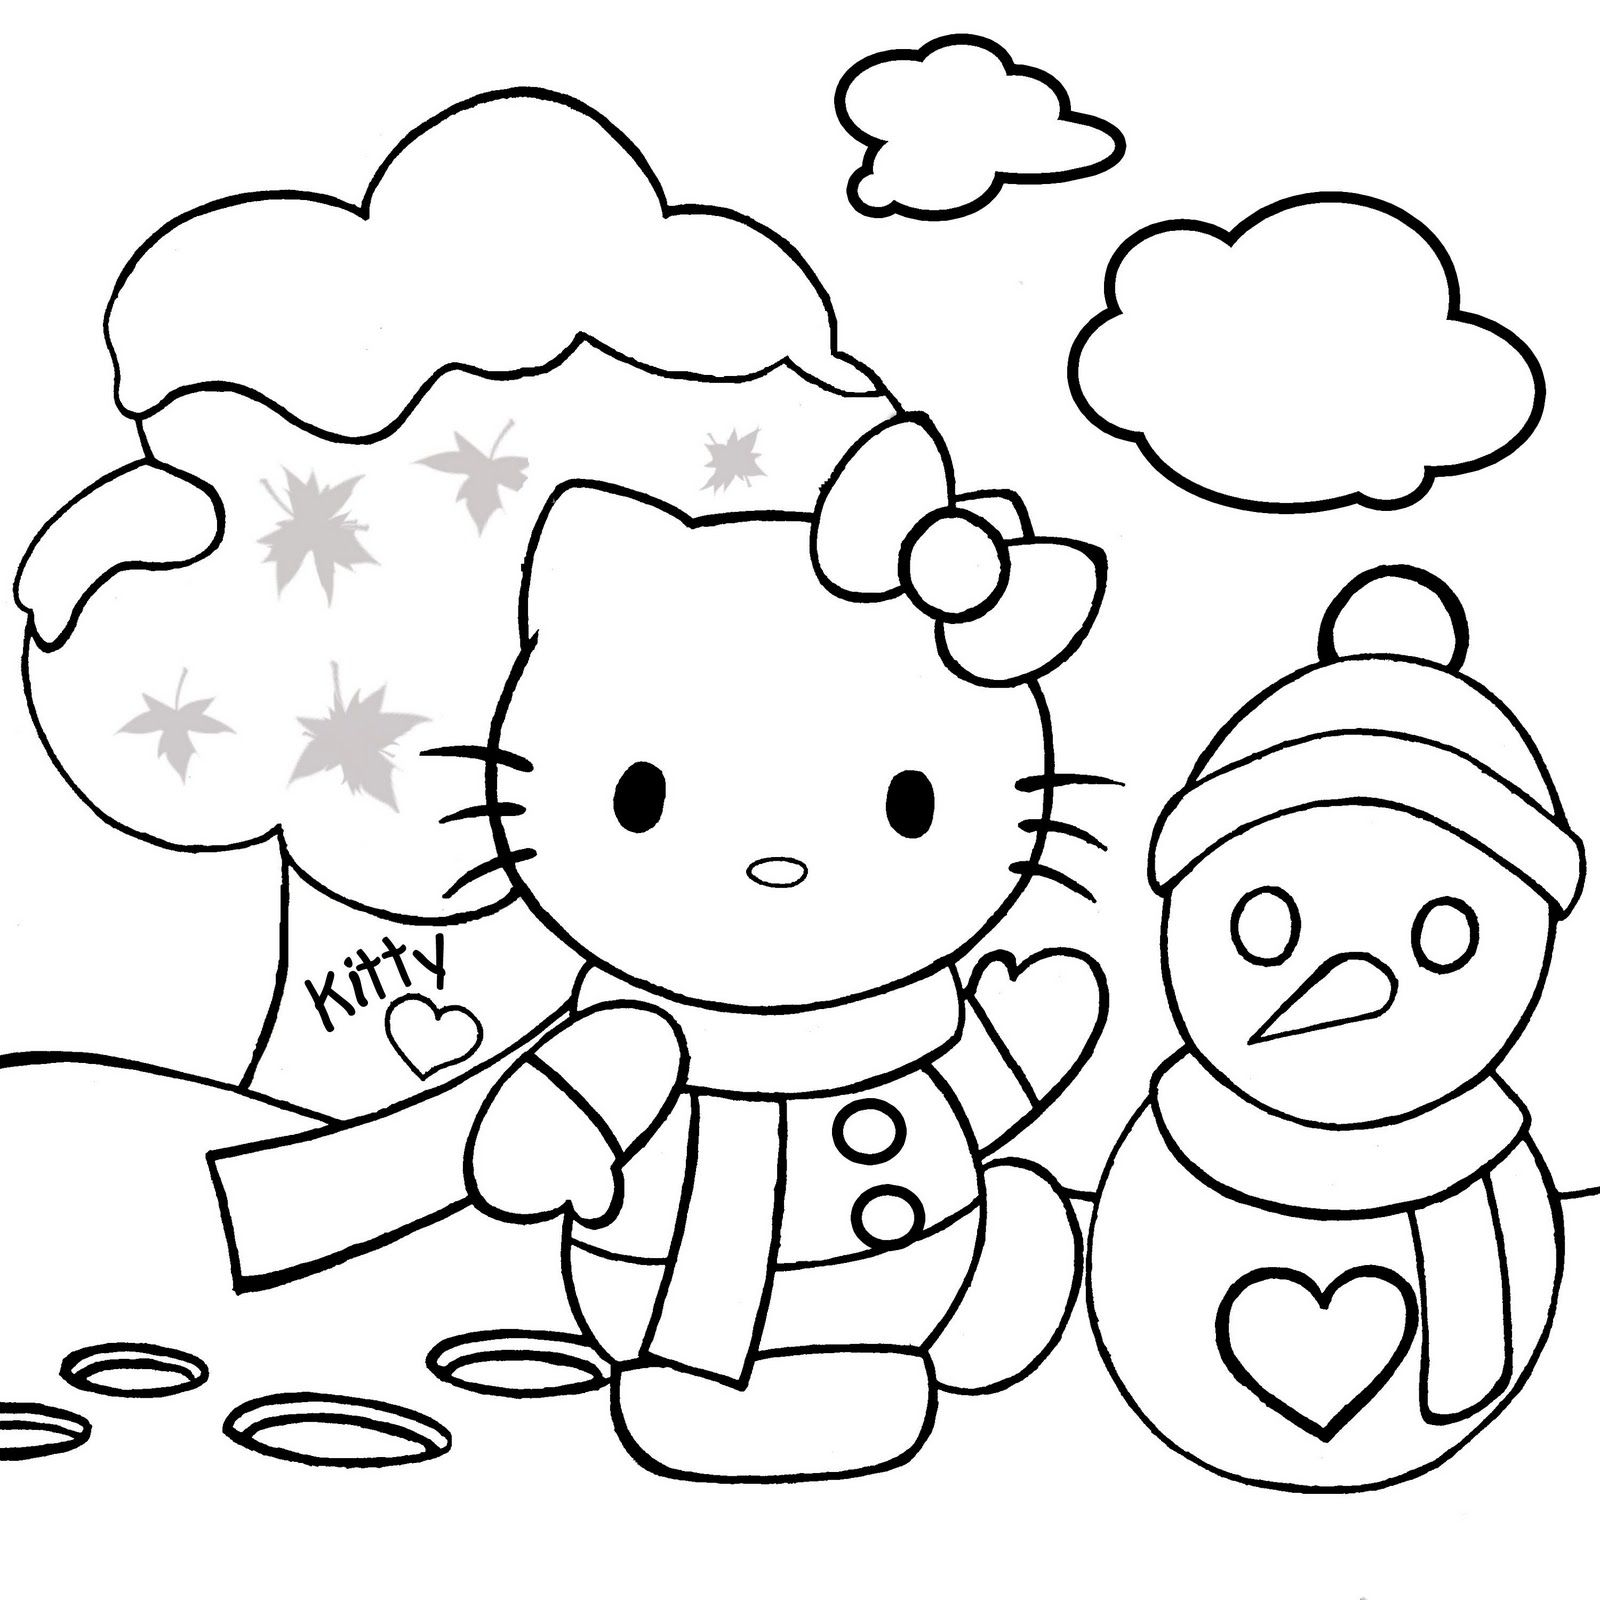 Happy Christmas Hello Kitty Coloring Pages Christmas